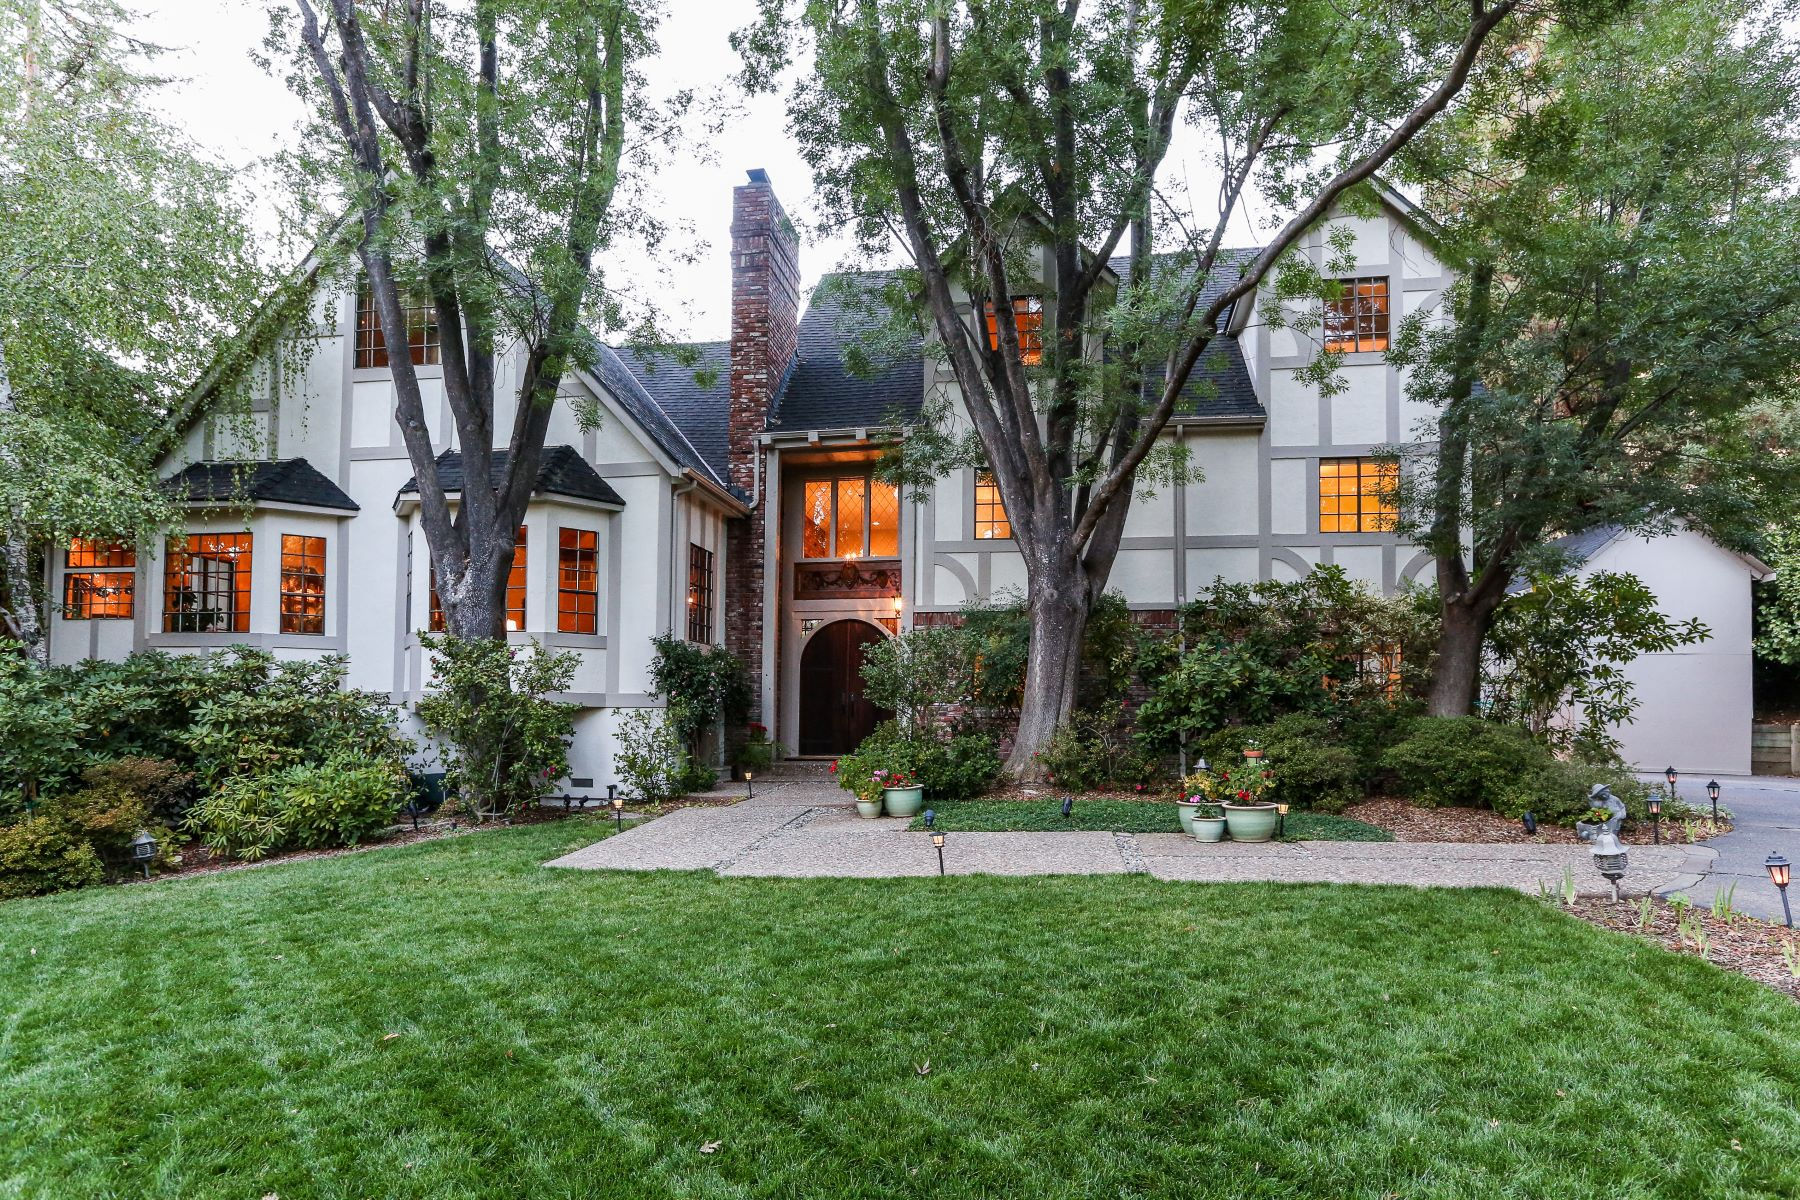 Single Family Home for Sale at Exquisite Gated Tudor Hampton Estate 2510 Mt Diablo Scenic Blvd Danville, California 94506 United States